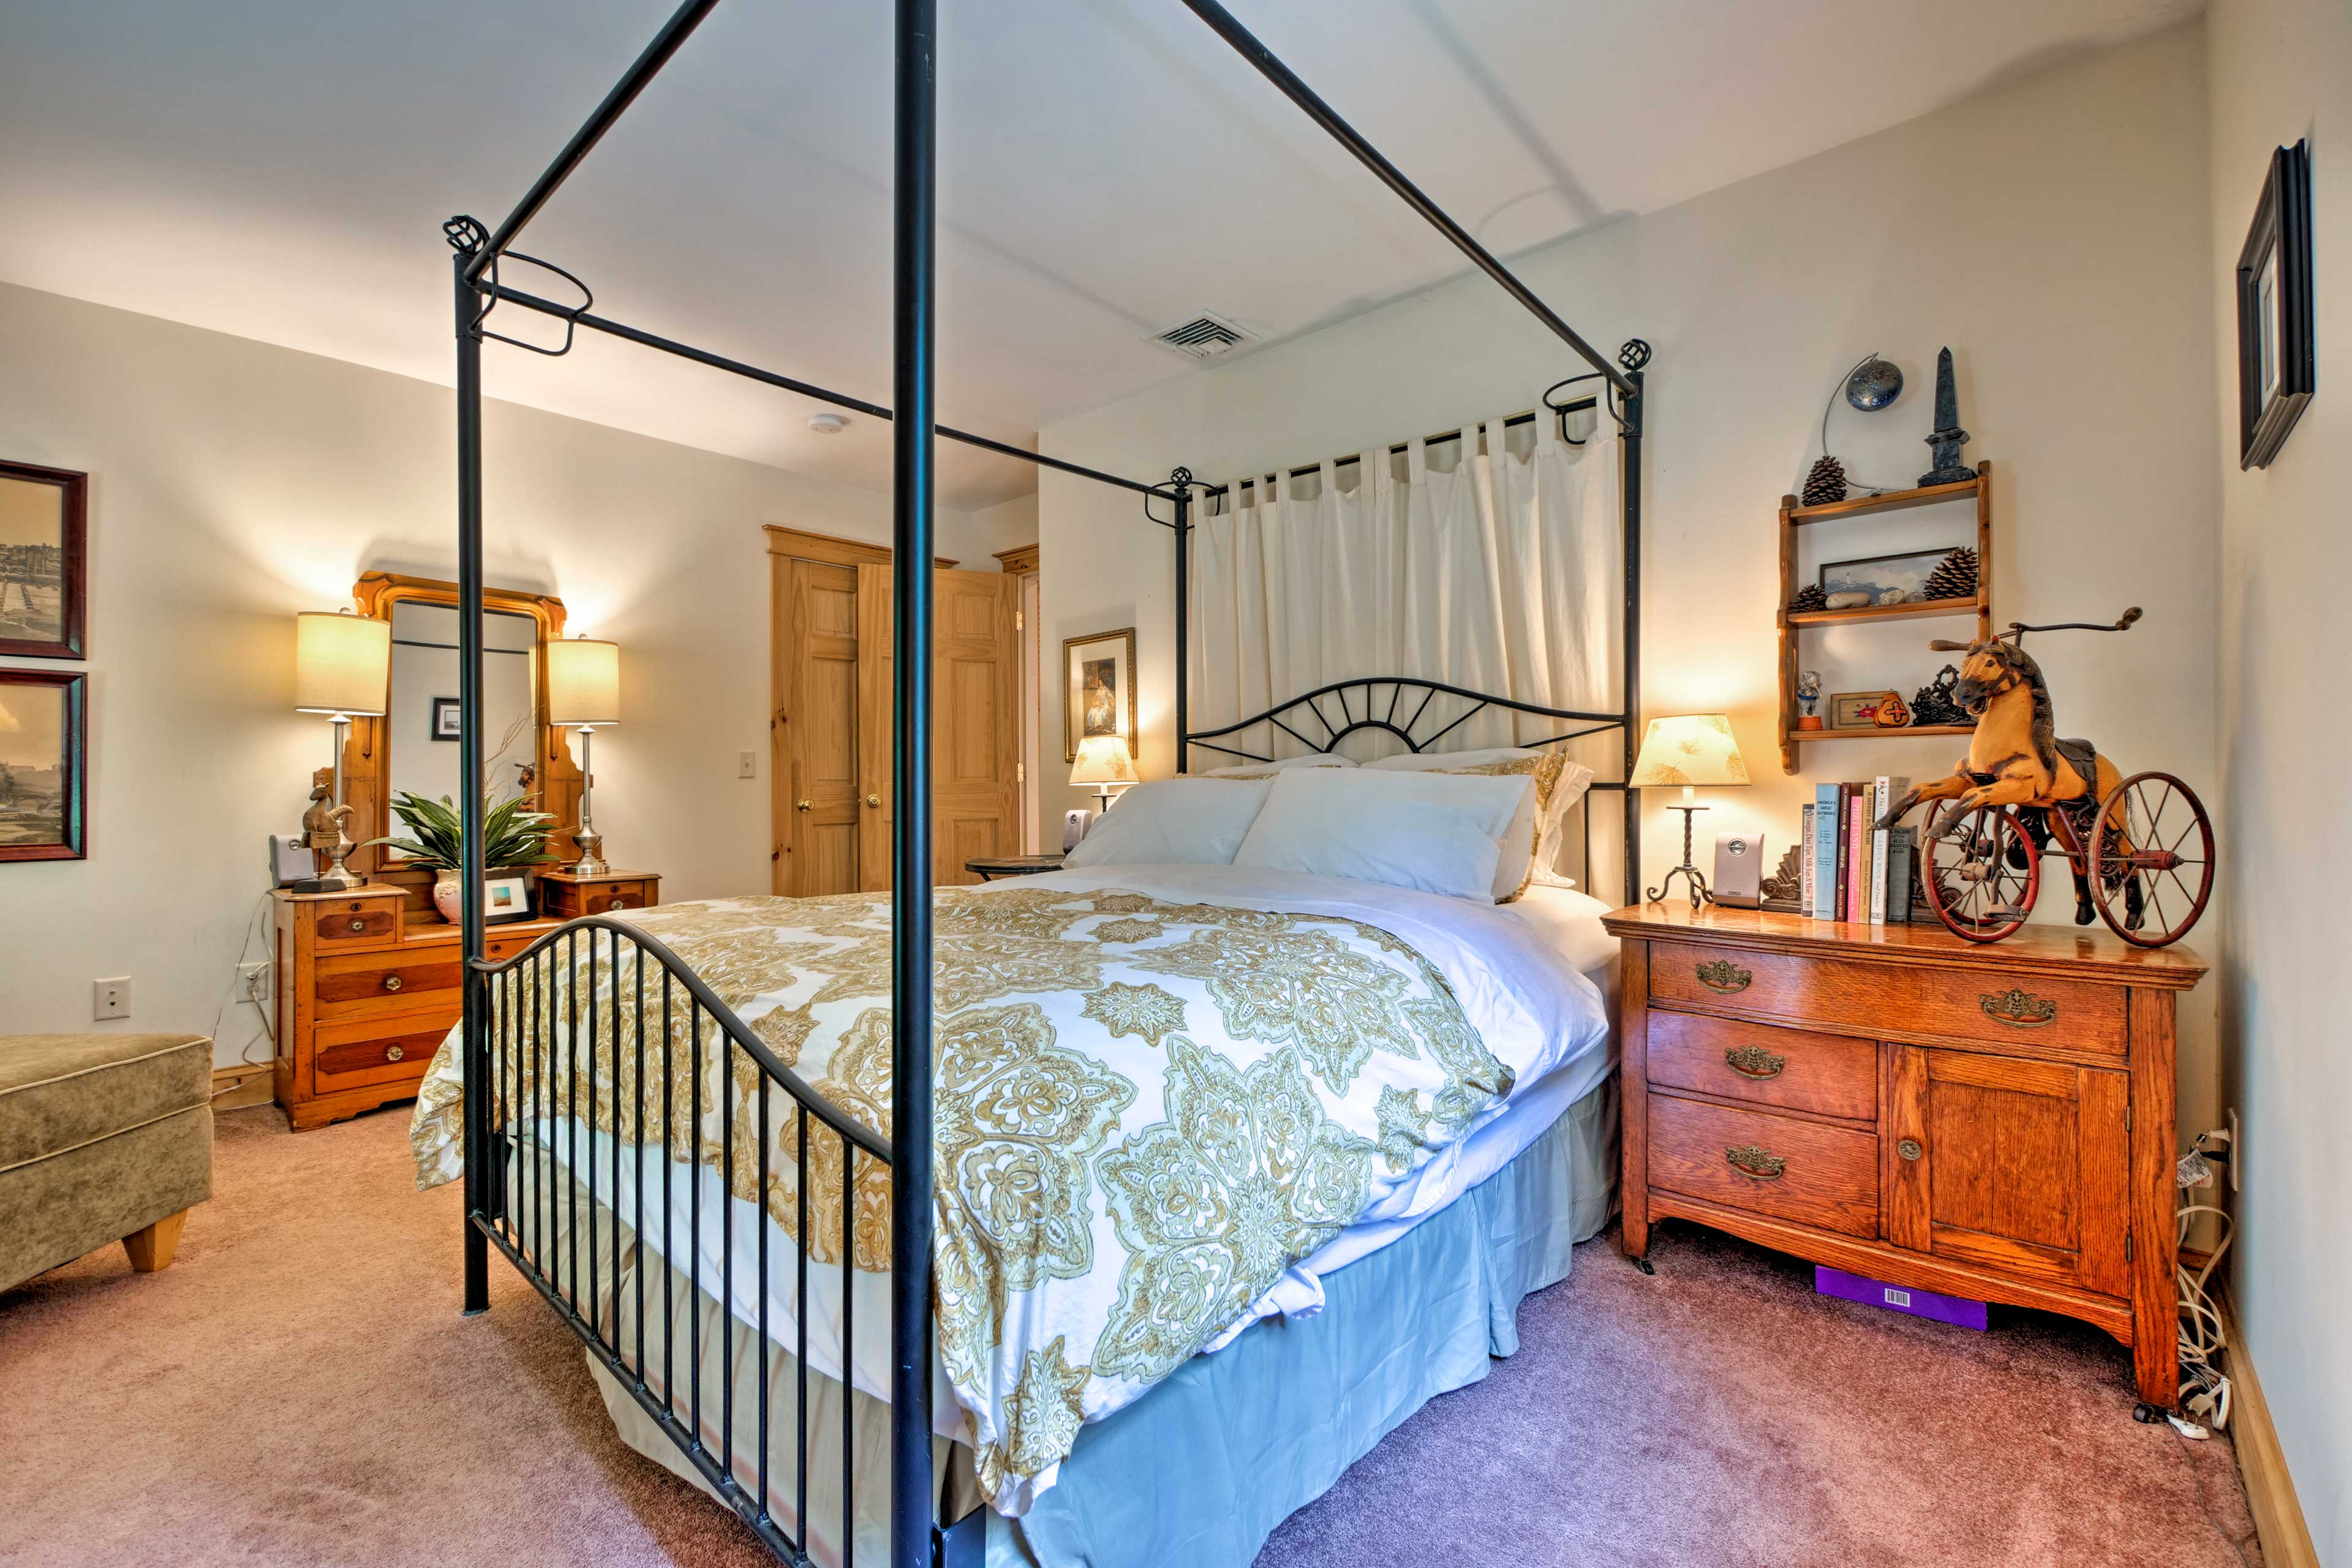 The second bedroom is just as beautiful at the master with a queen bed.